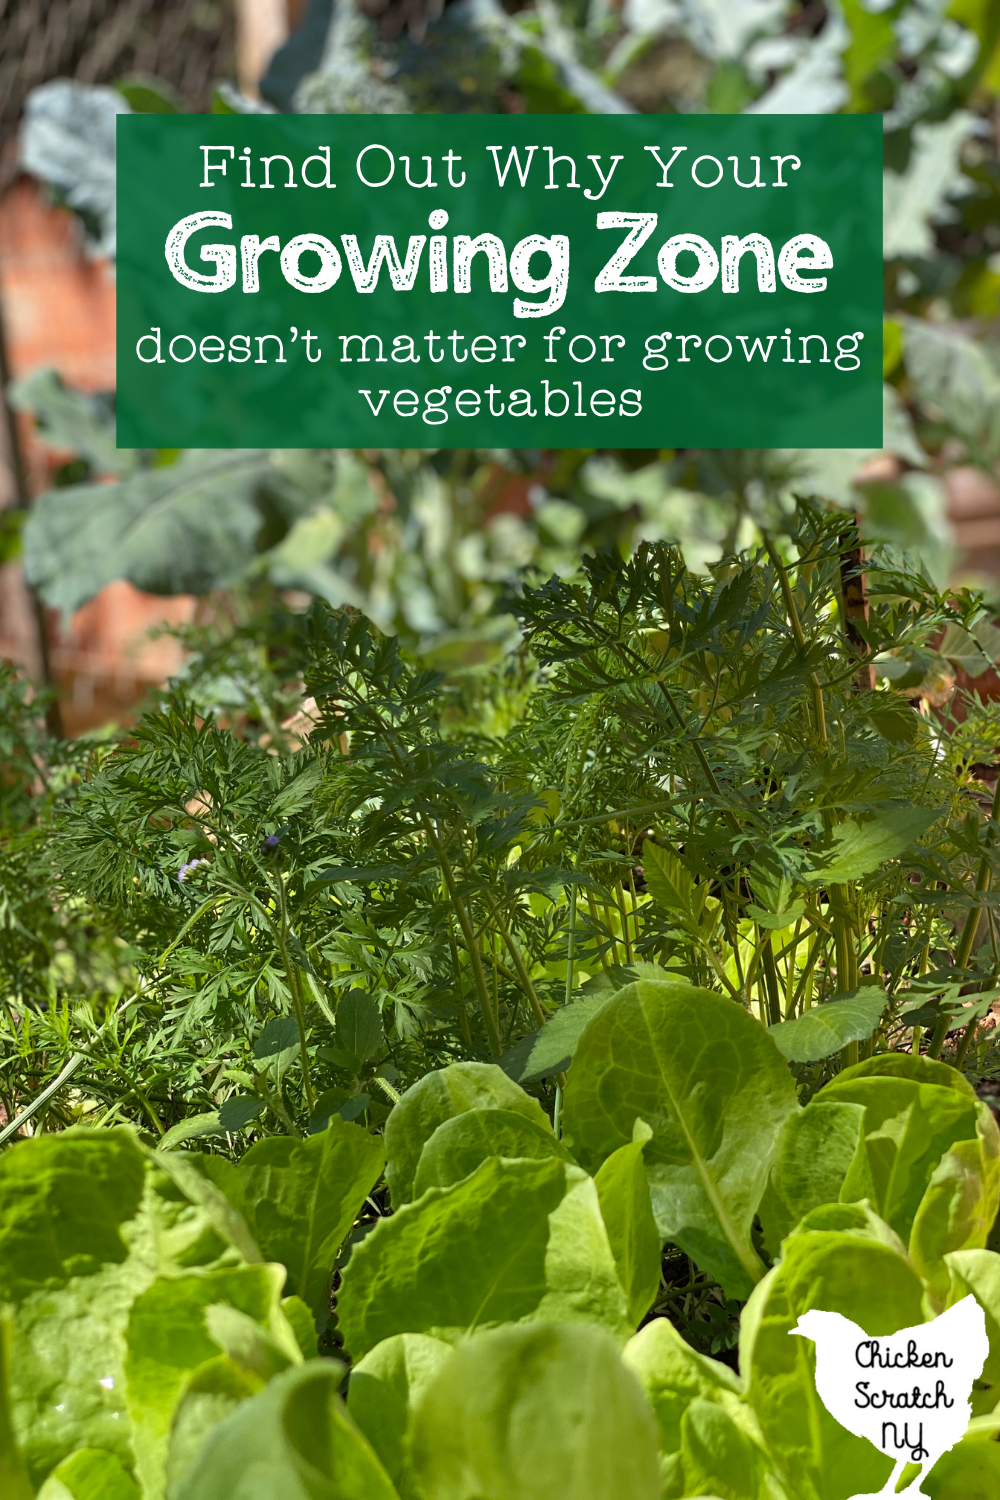 """close up image of a vegetable garden showing carrot tops and spinach with text overlay """"find out why your growing zone doesn't matter for growing vegetables"""""""